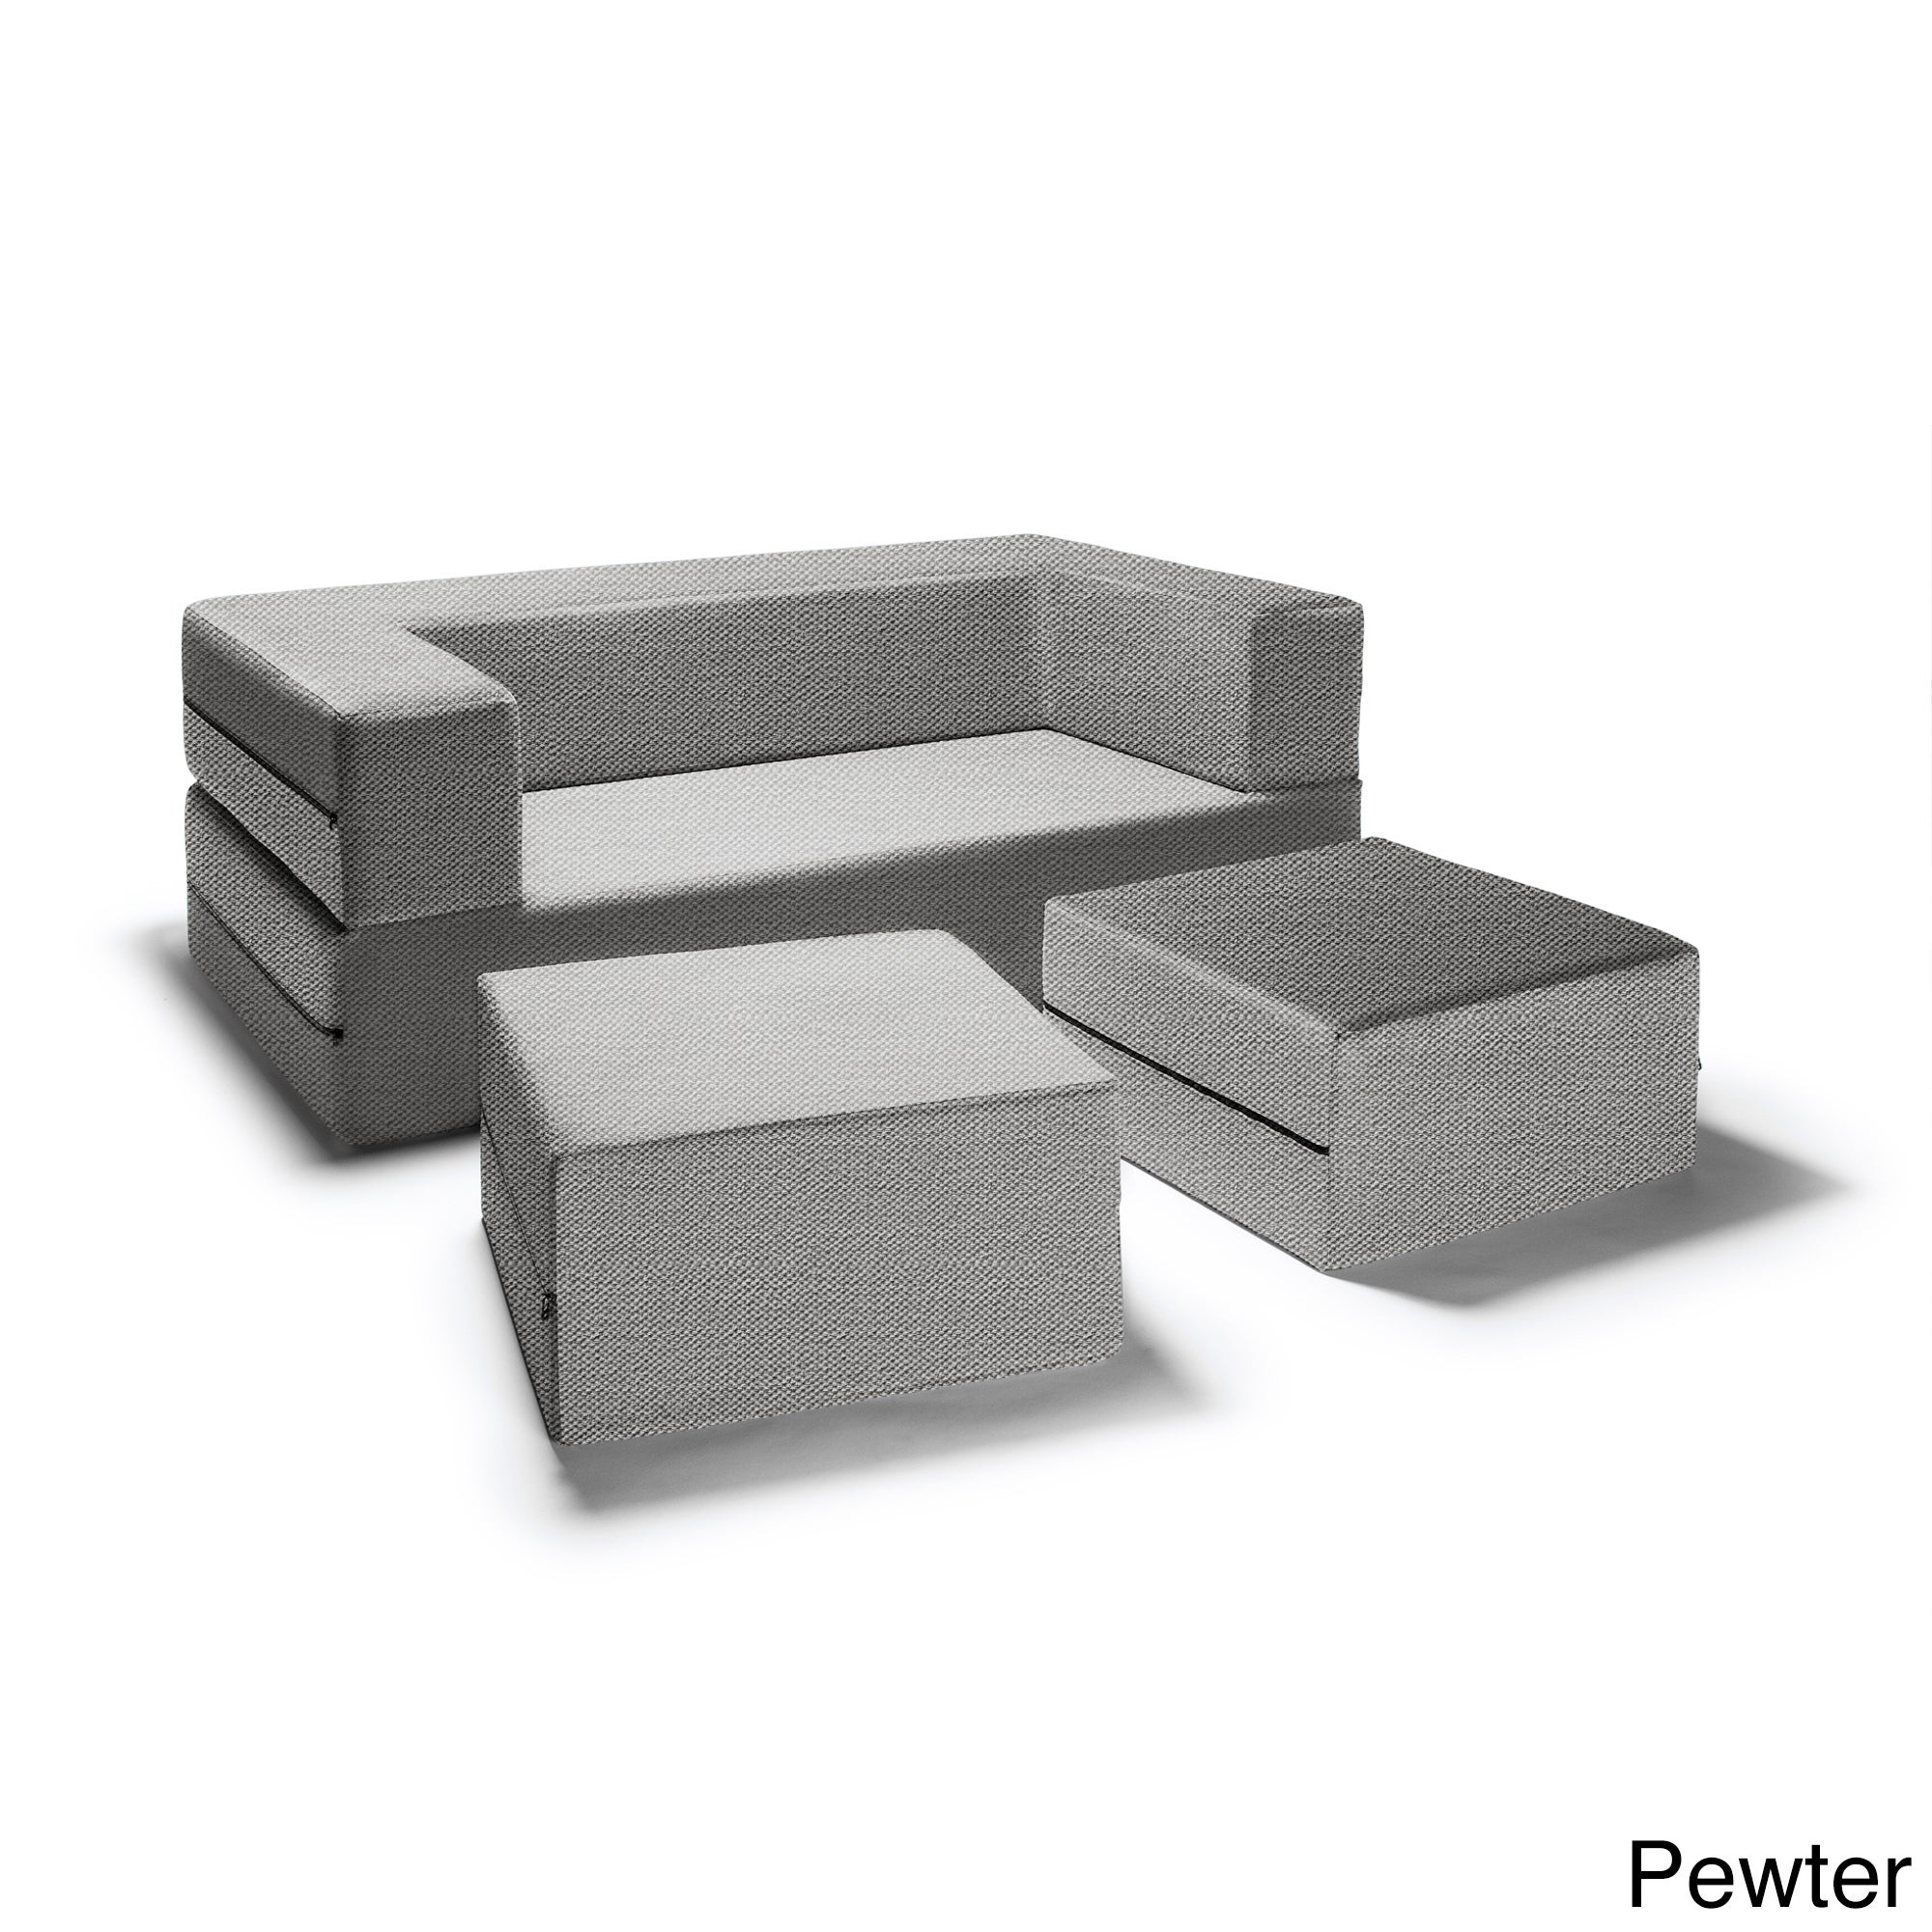 spaces furniture sleeper for small couches loveseats sofas eva